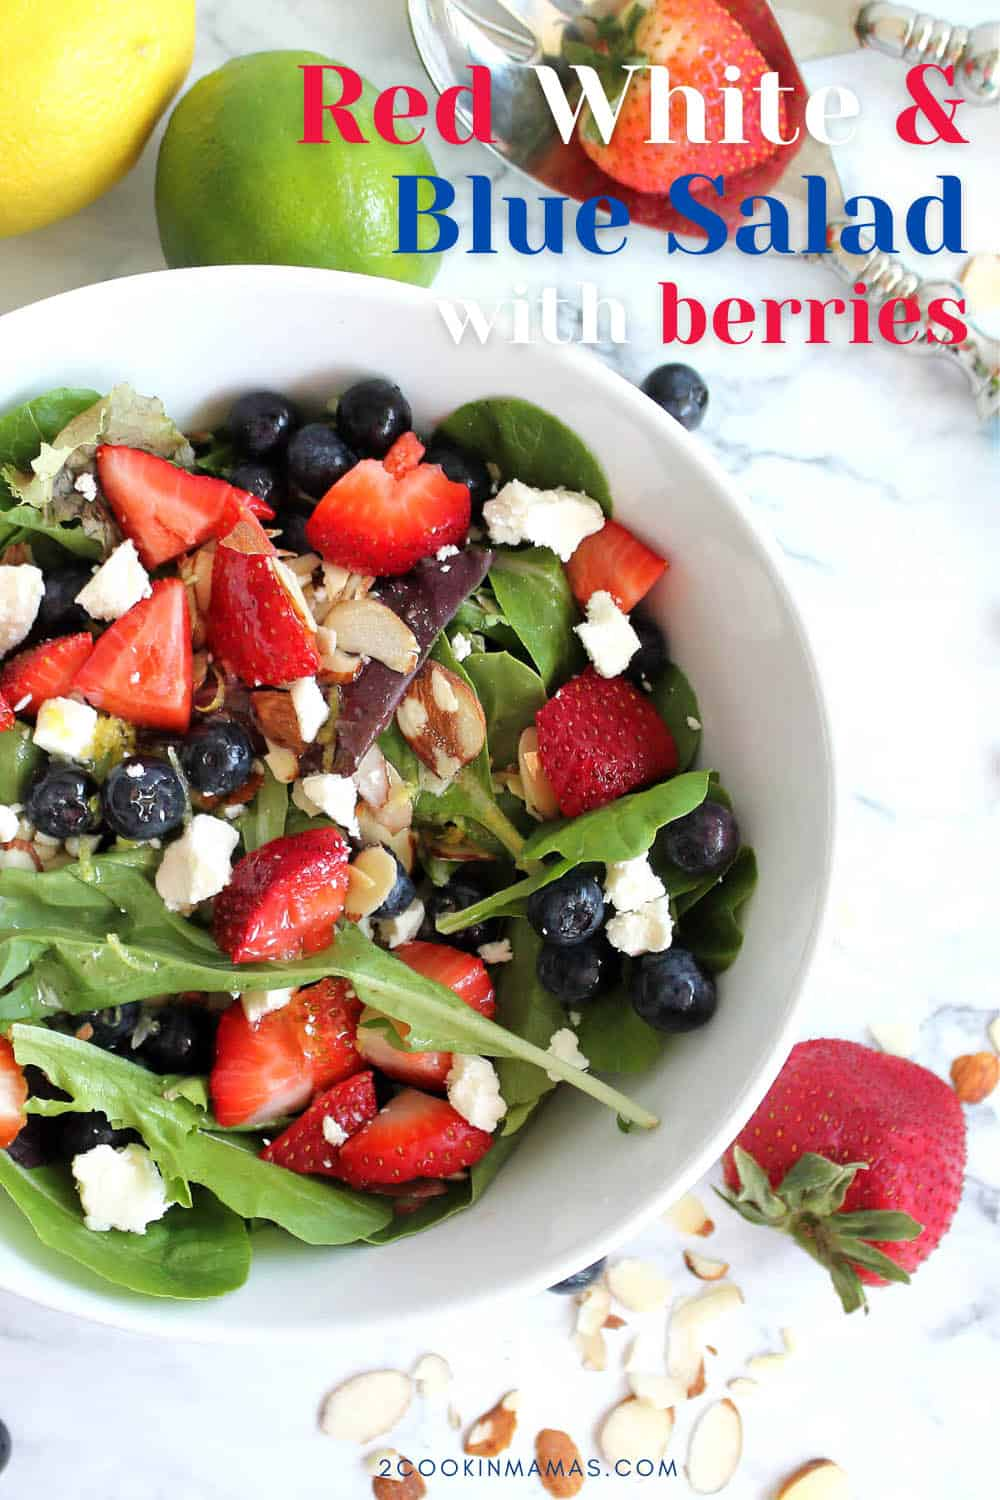 Red White and Blue Salad with Berries